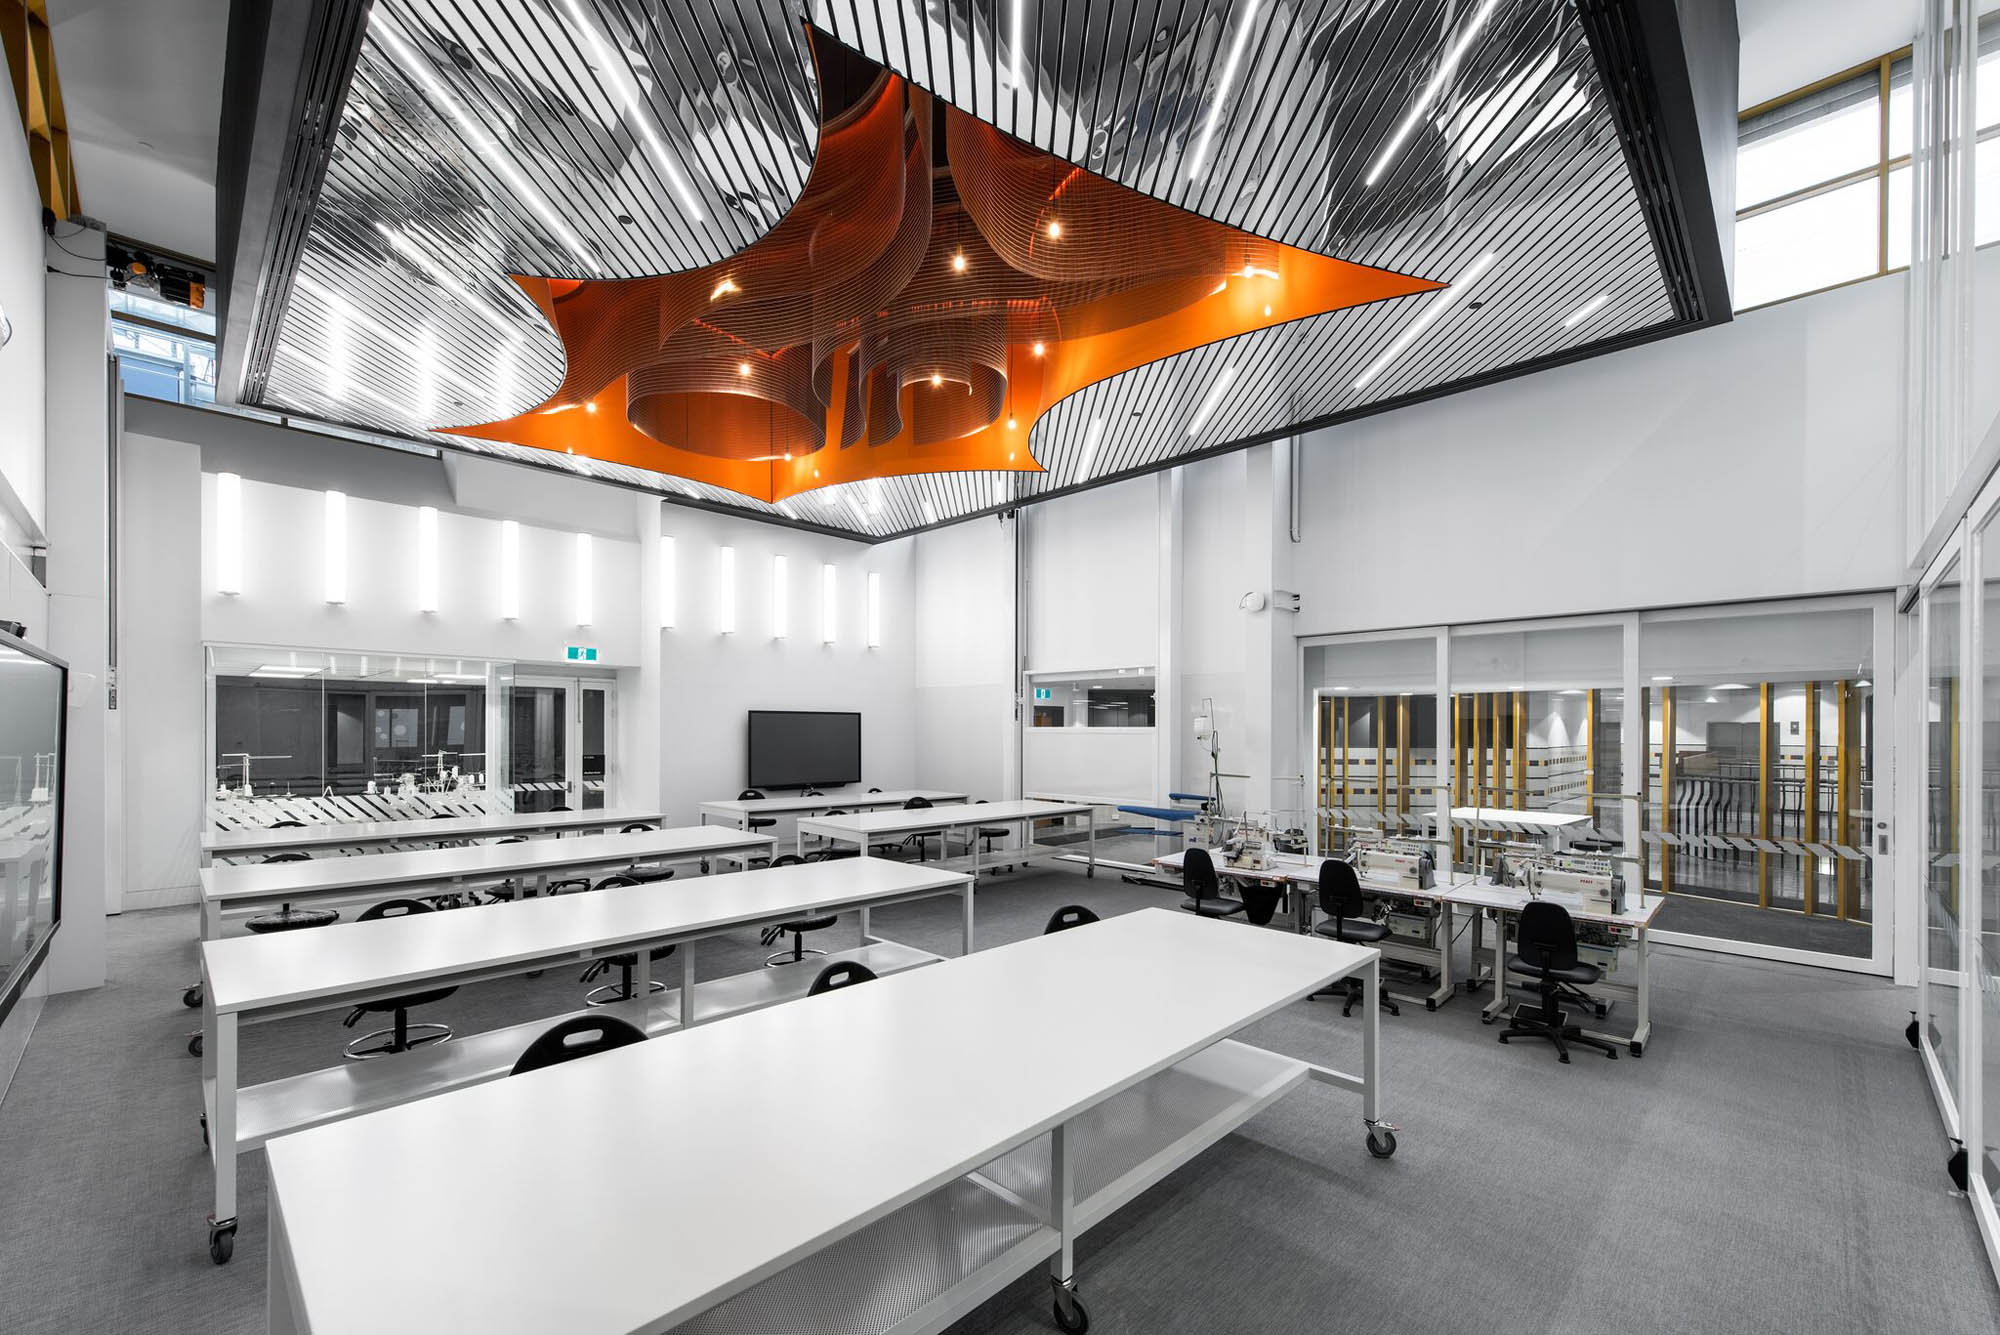 RMIT University School of Fashion and Textiles building with barrisol lumiere ceiling